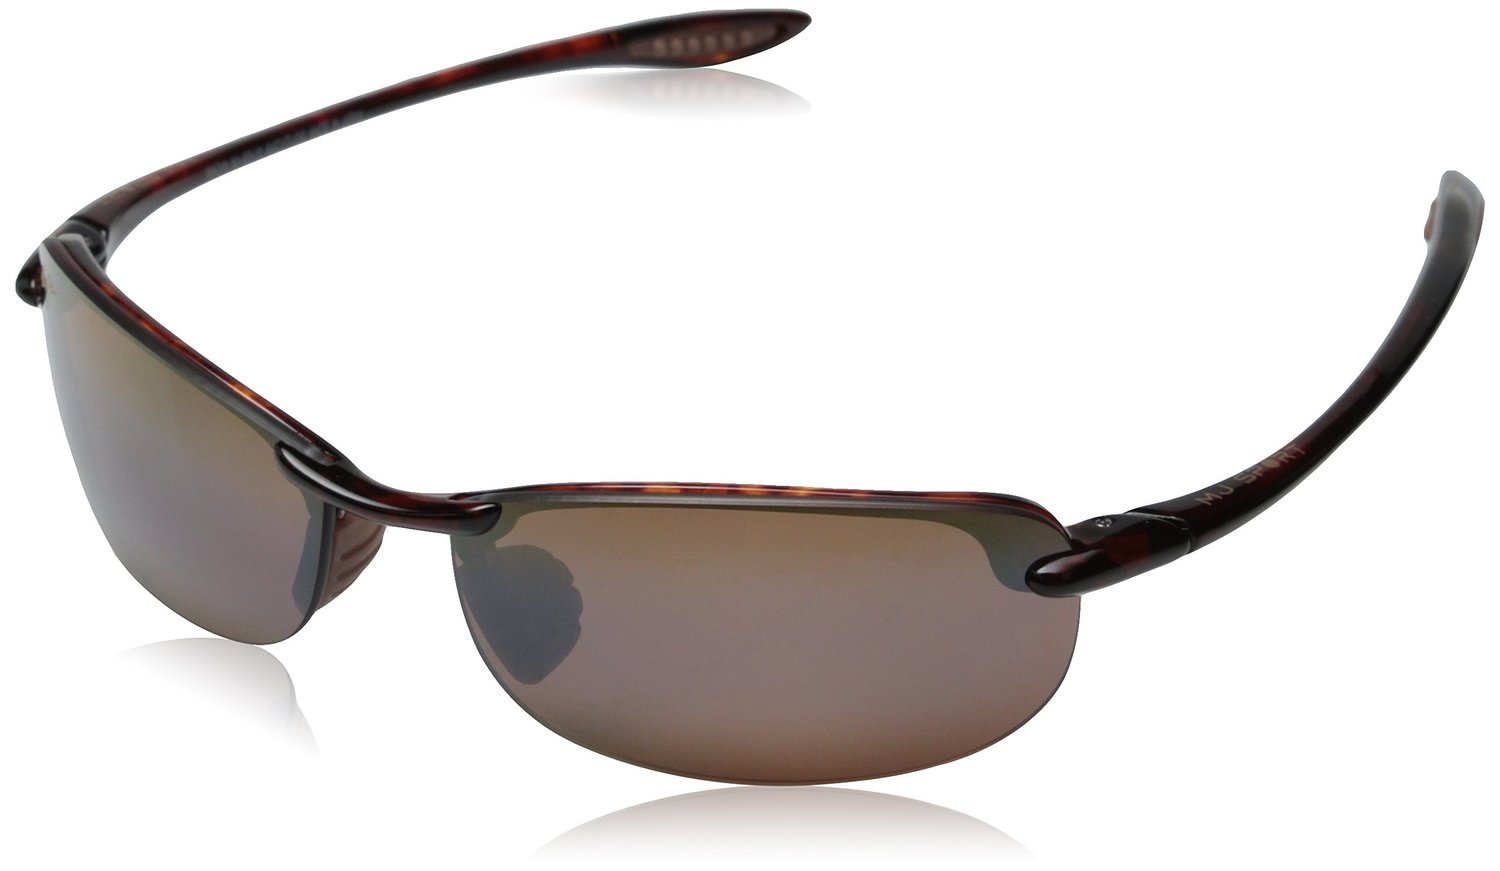 Maui Jim Sunglasses Clearance  designer sunglasses designer sunglasses